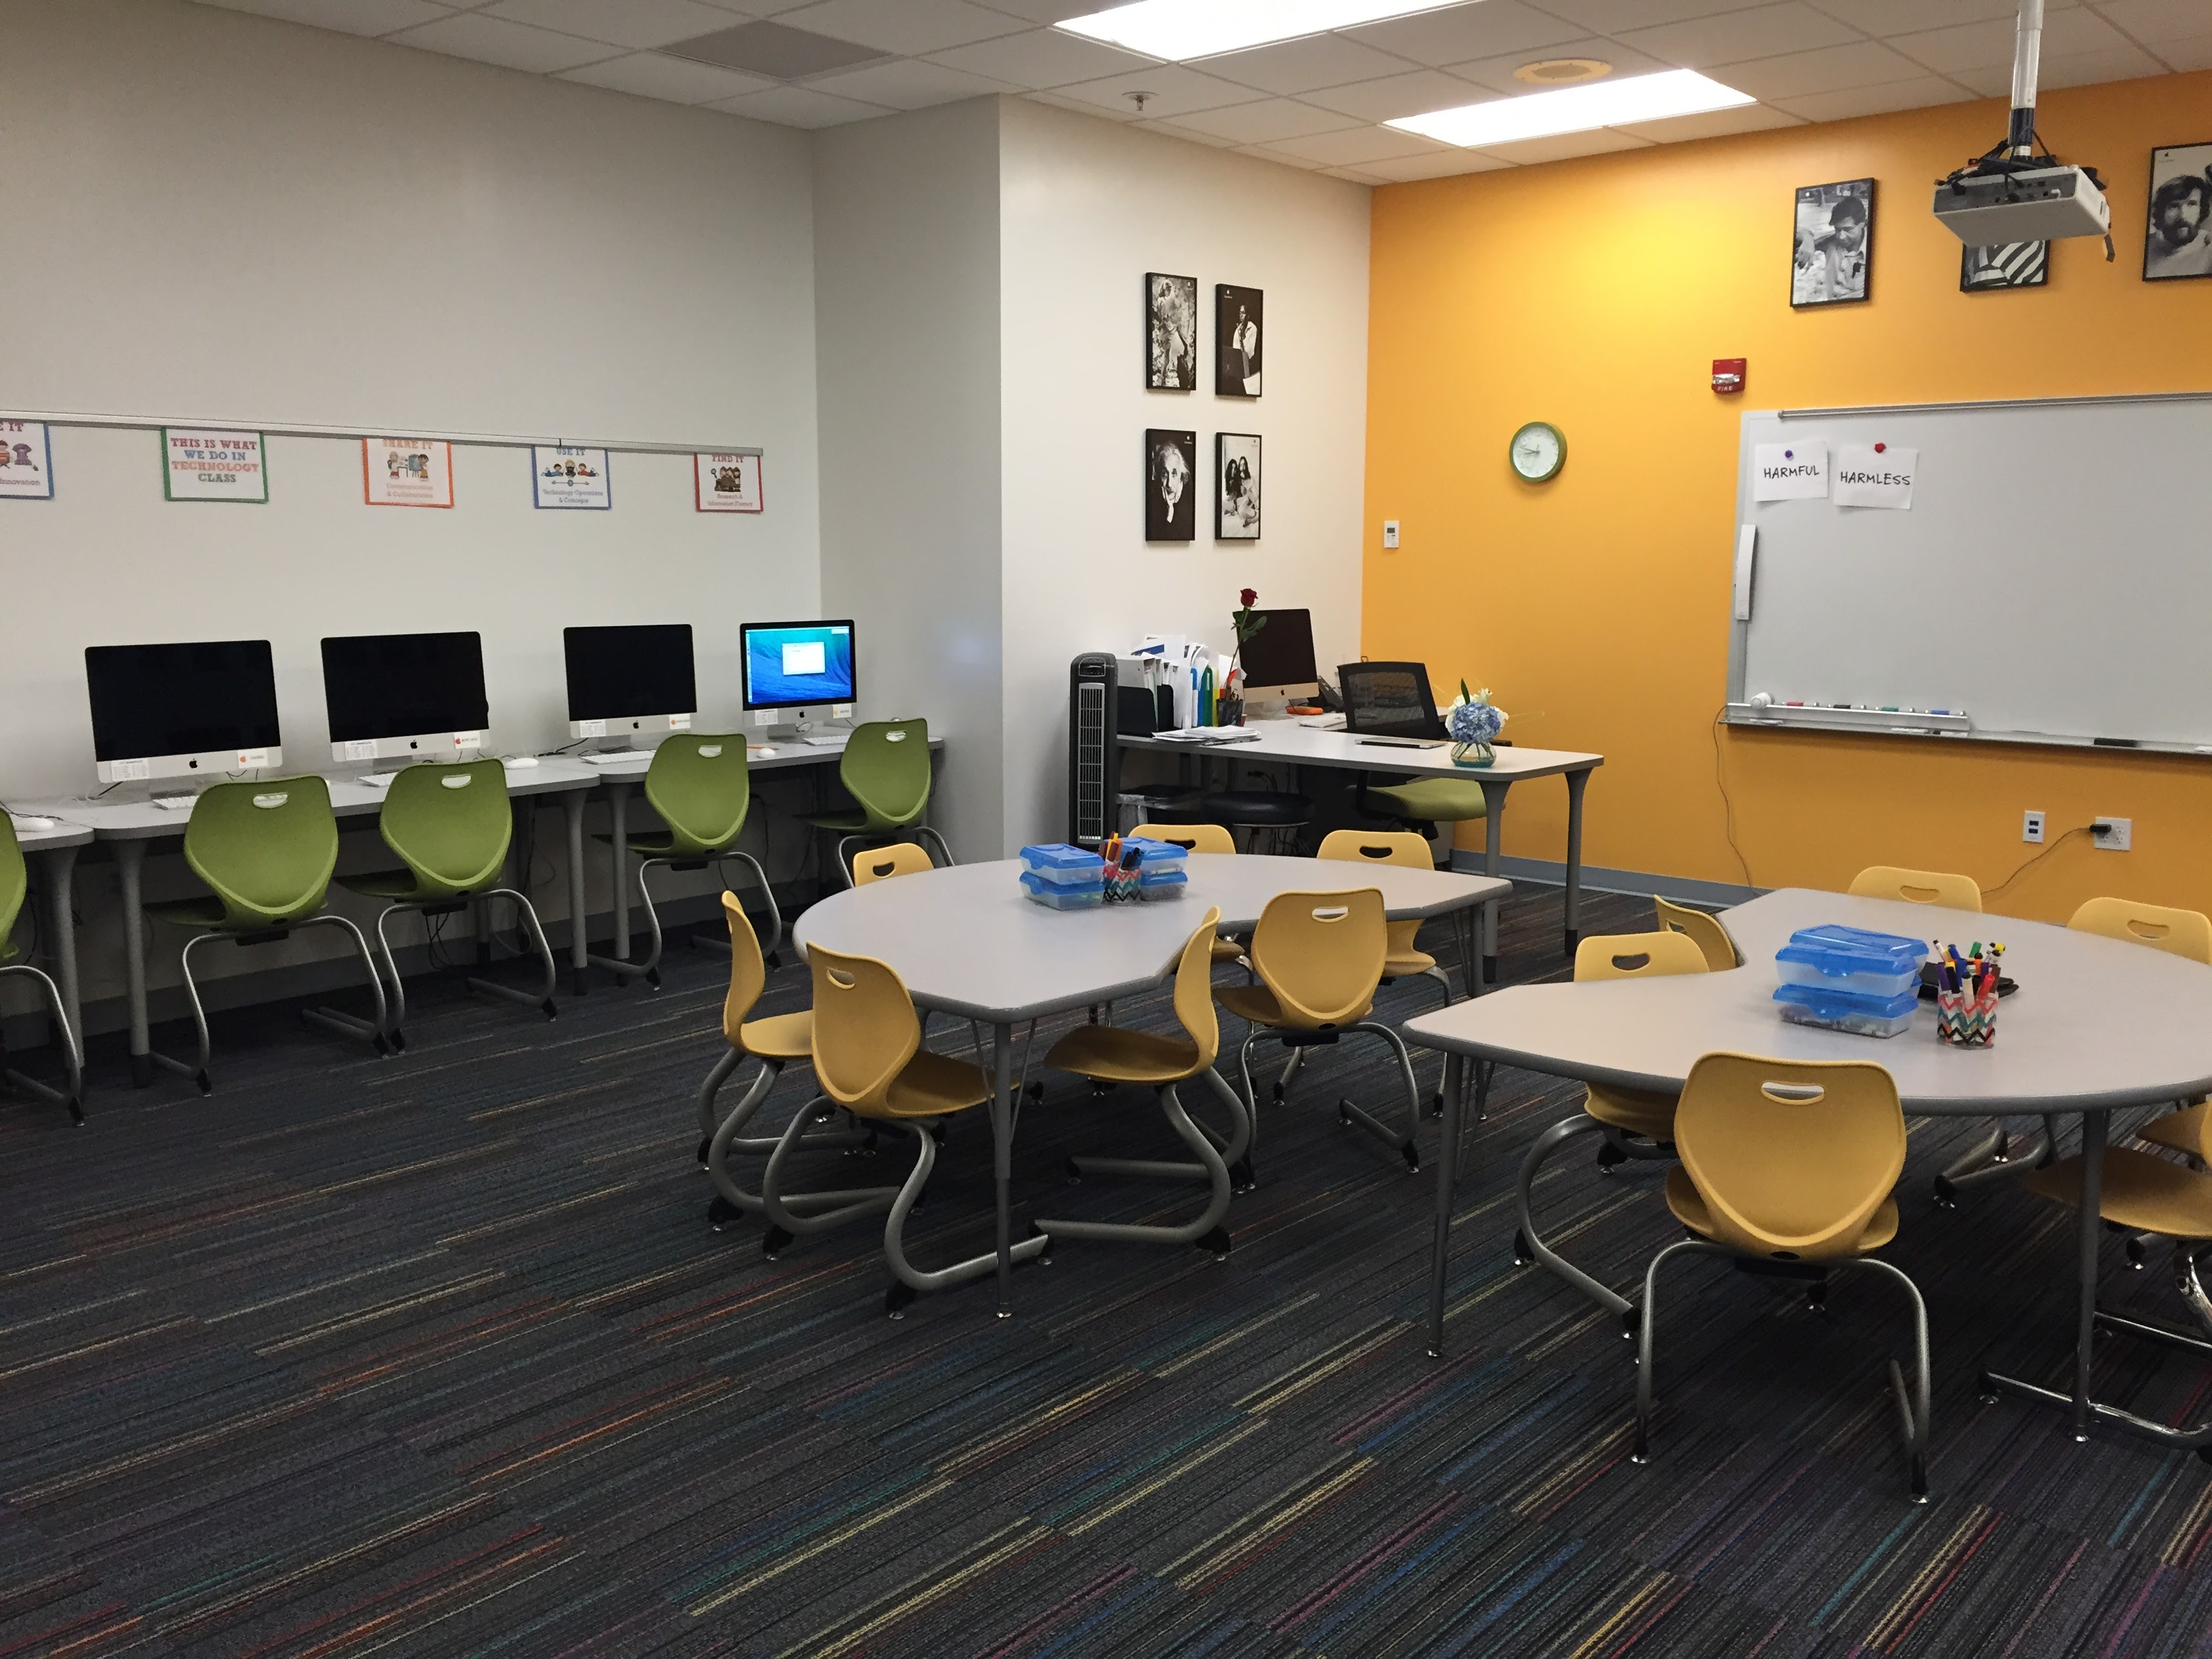 Classroom Furniture Design Standards ~ Ways to upgrade your classroom design cult of pedagogy